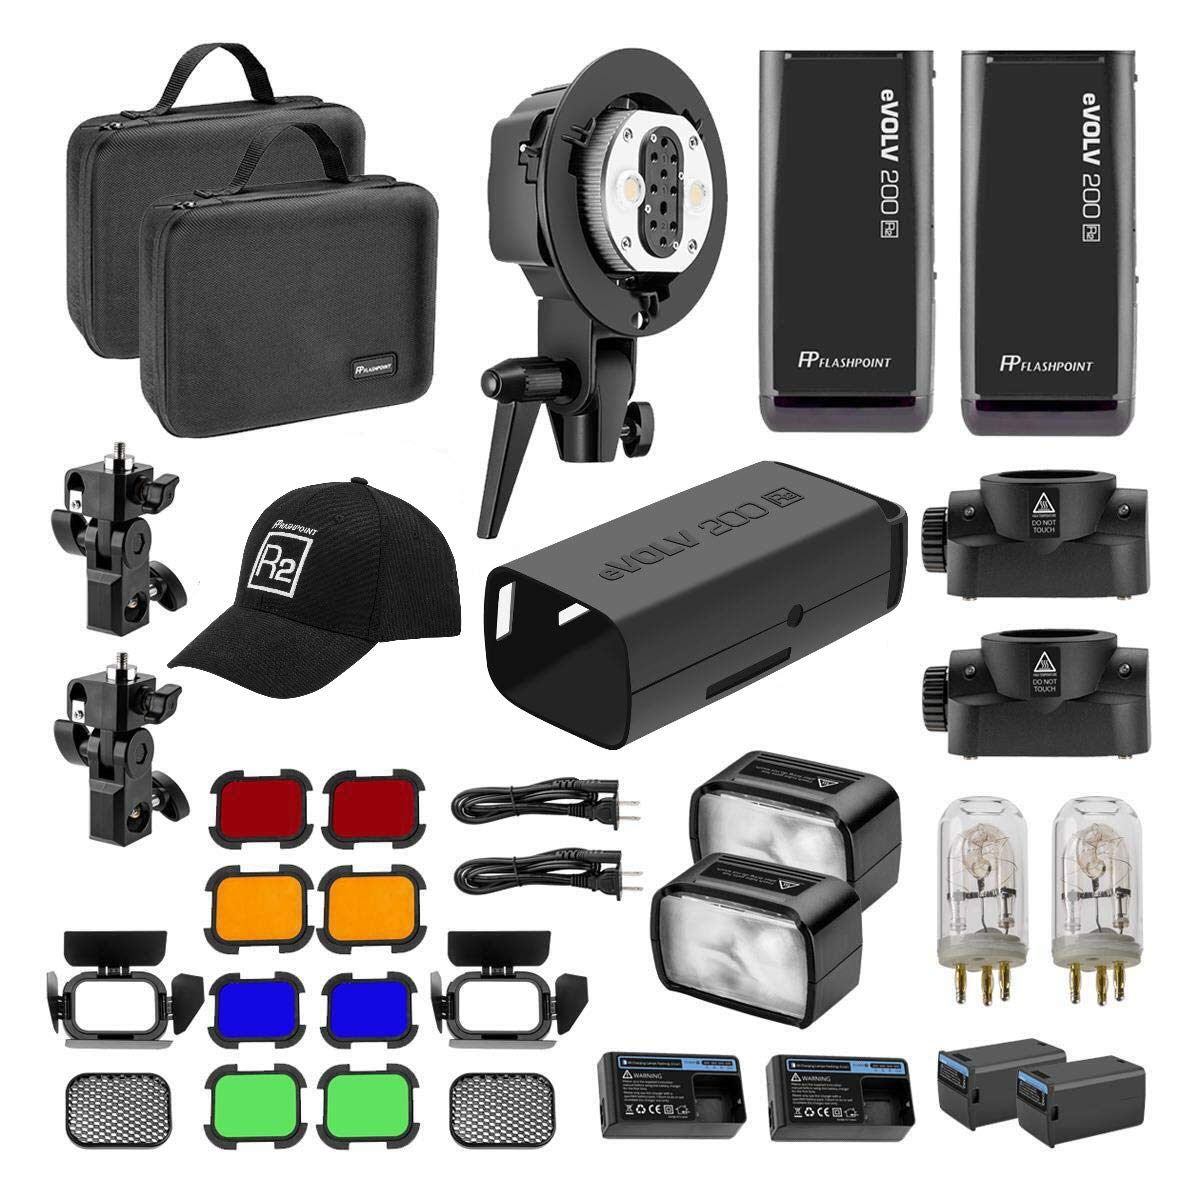 Flashpoint eVOLV 200 TTL Pocket Flash Dual Head Pro Kit - Adorama Exclusive Kit by Flashpoint (Image #1)